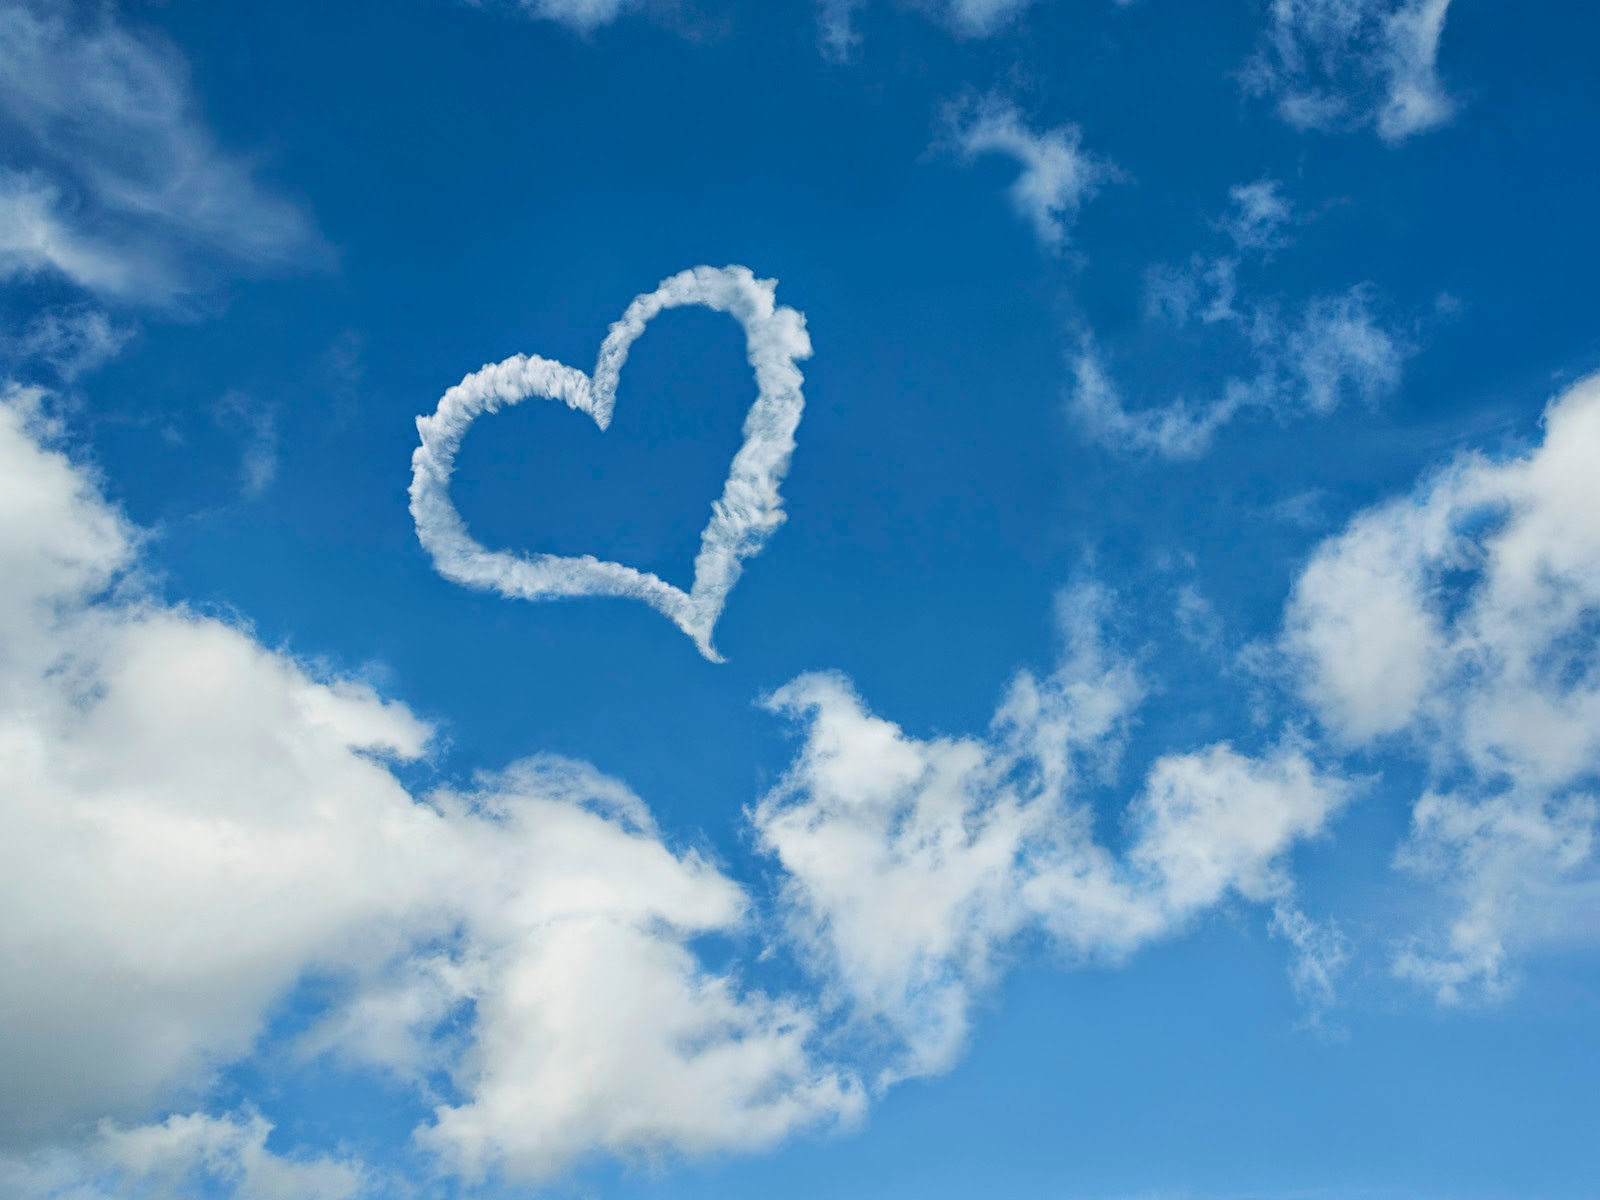 clouds-heart-hd-wallpaper